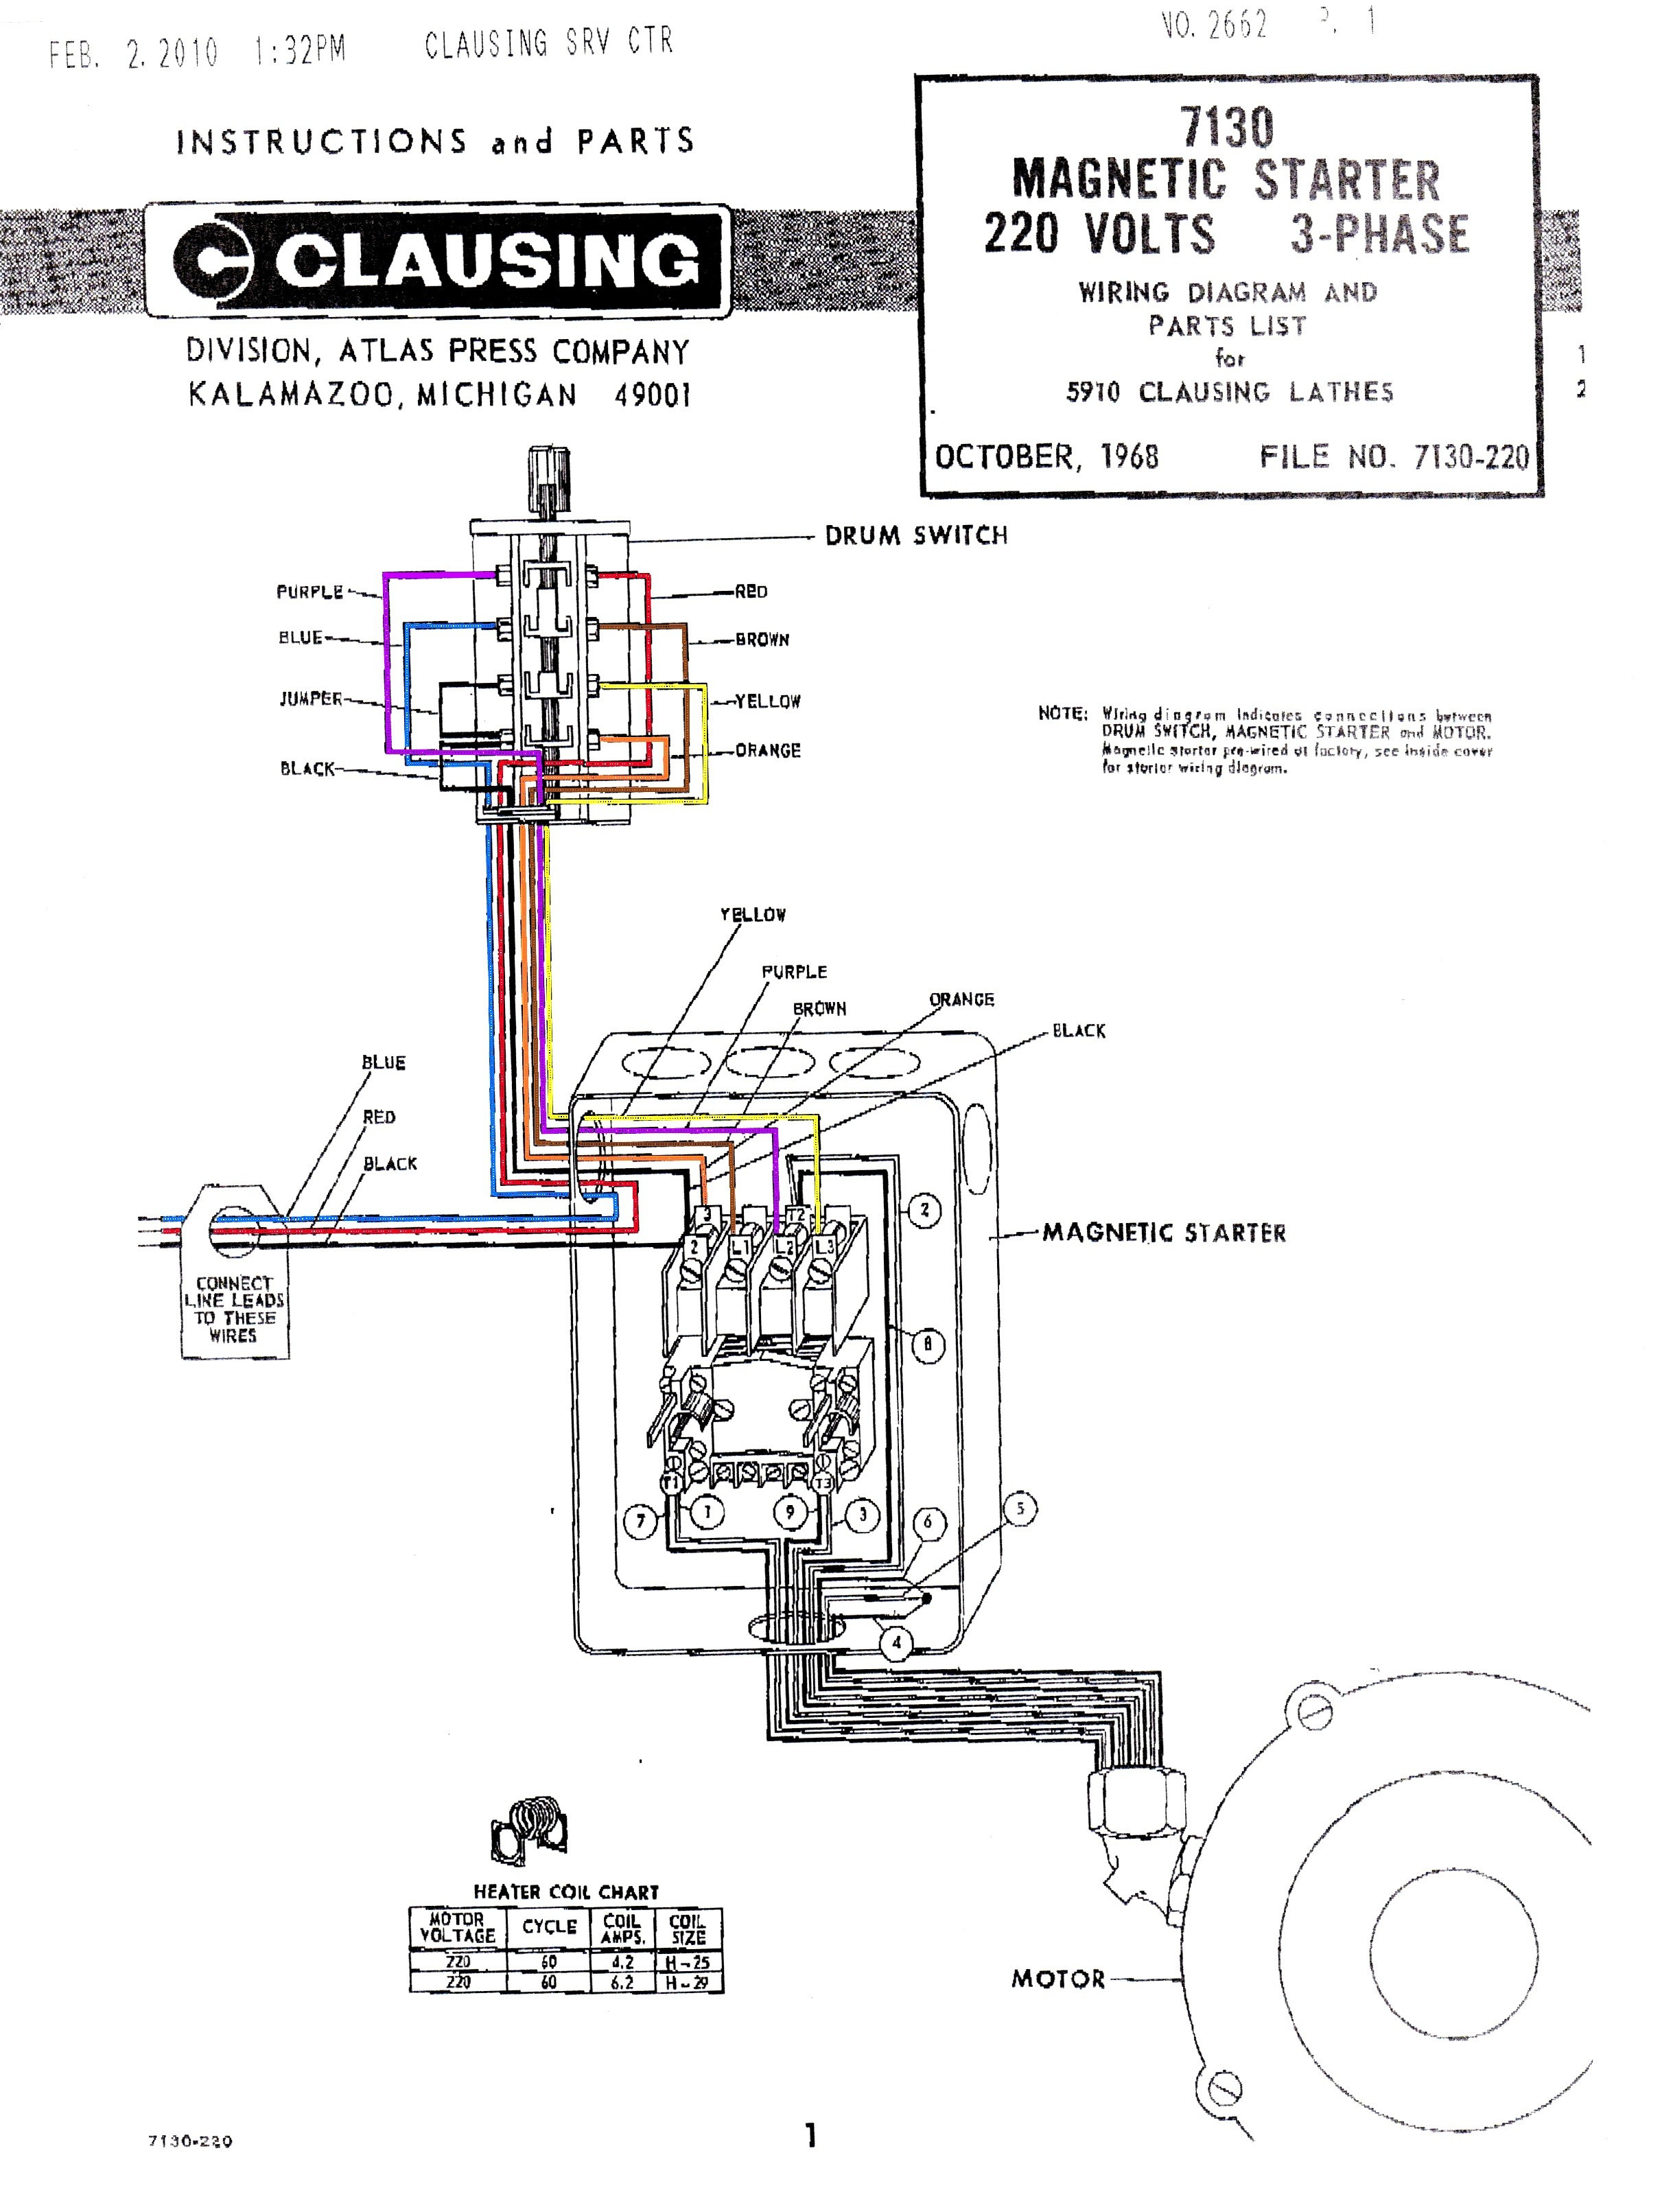 Diagram 110v Motor Starter Wiring Diagram Full Version Hd Quality Wiring Diagram Diagramduck Ozeallunettes Fr